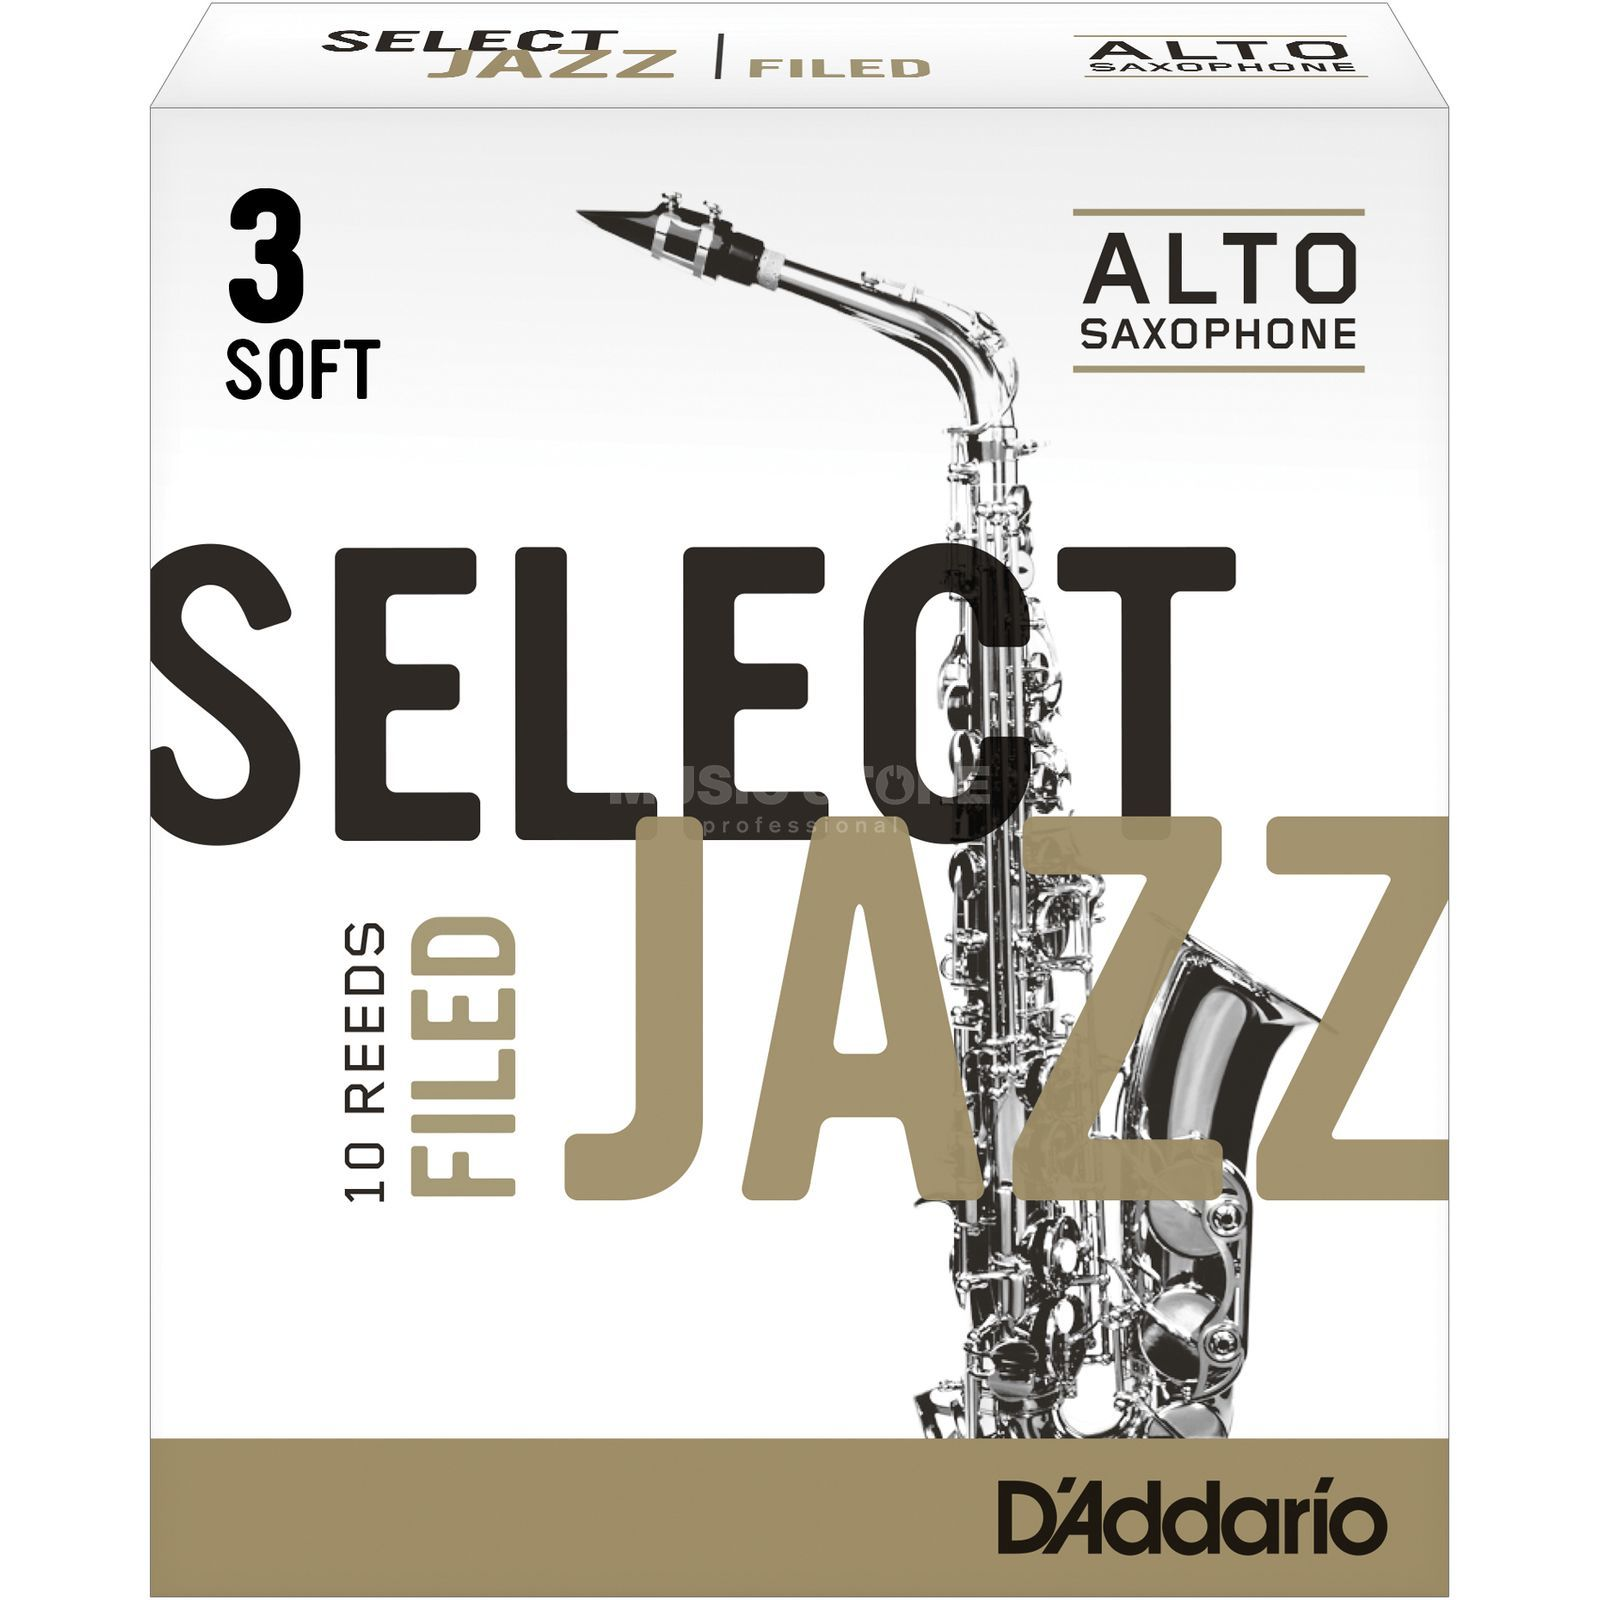 D'Addario Woodwinds Select Jazz Filed Altsax 3S Produktbild